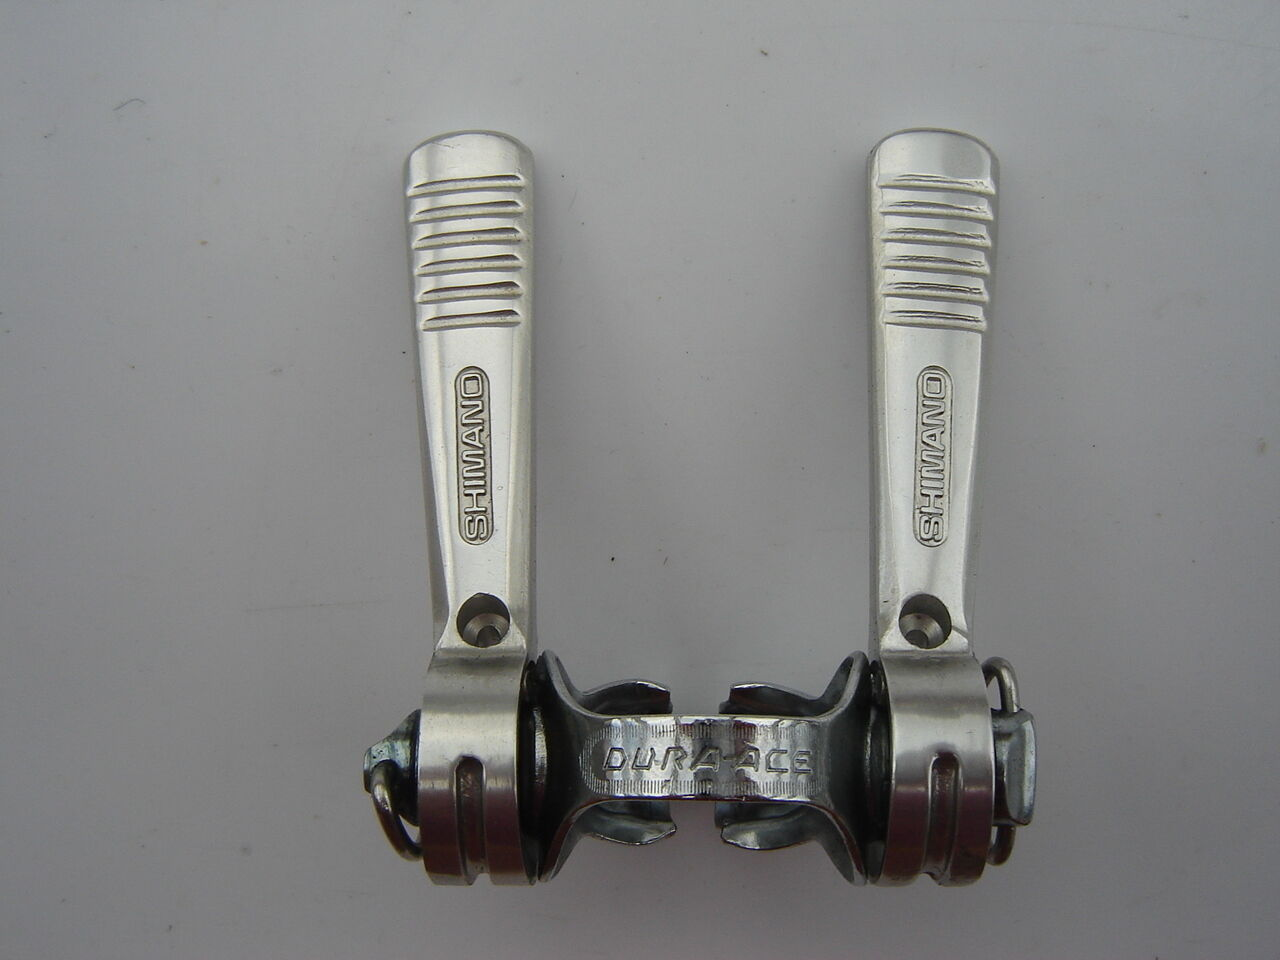 SHIMANO DURA ACE L-284   SL-101 FIRST GENERATION  CLAMP-ON SHIFTING LEVERS - NOS  ultra-low prices